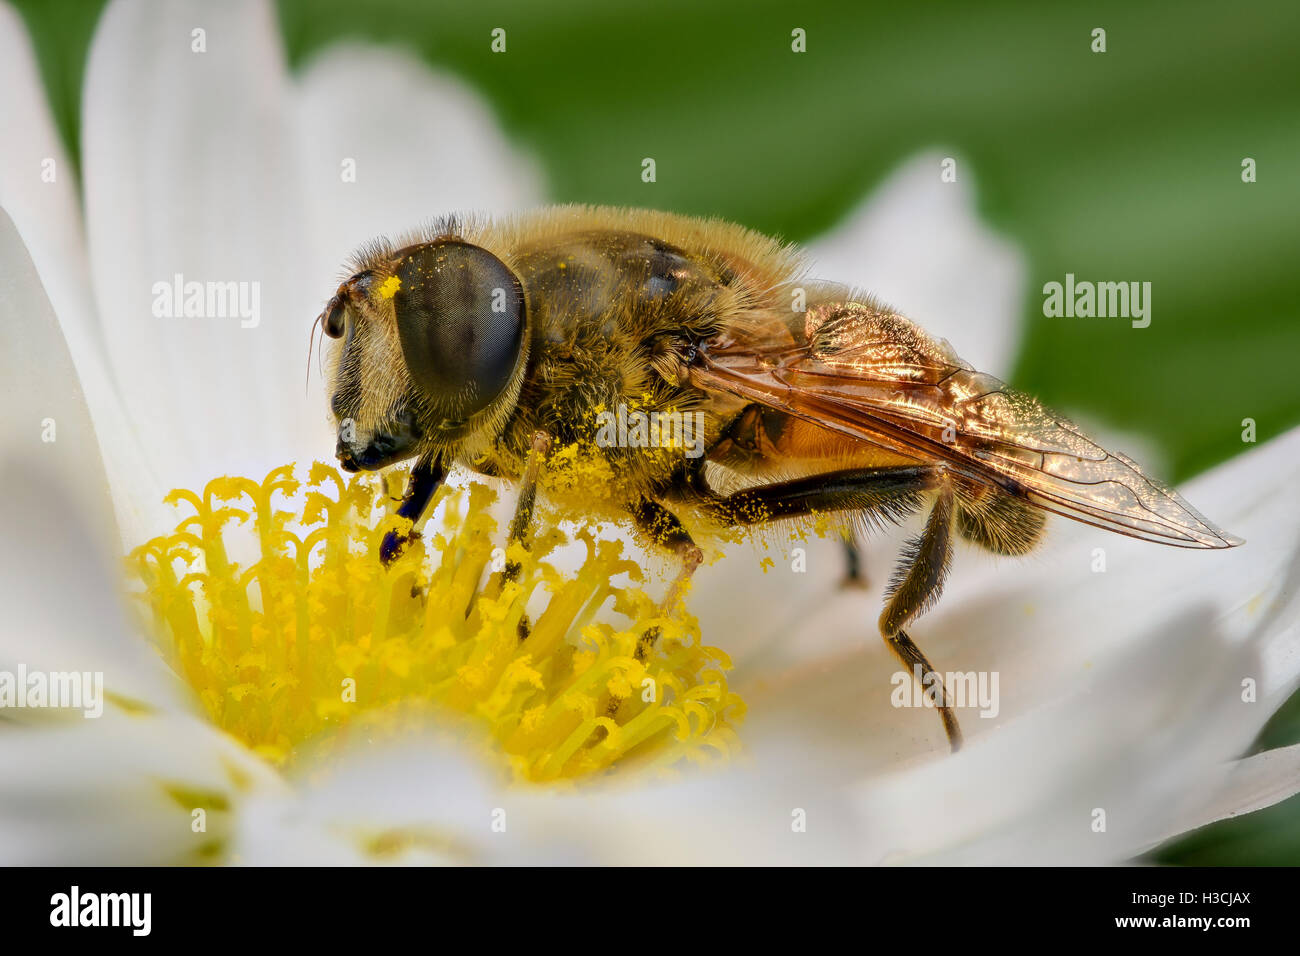 Extreme magnification - Bee pollinating, side view Stock Photo